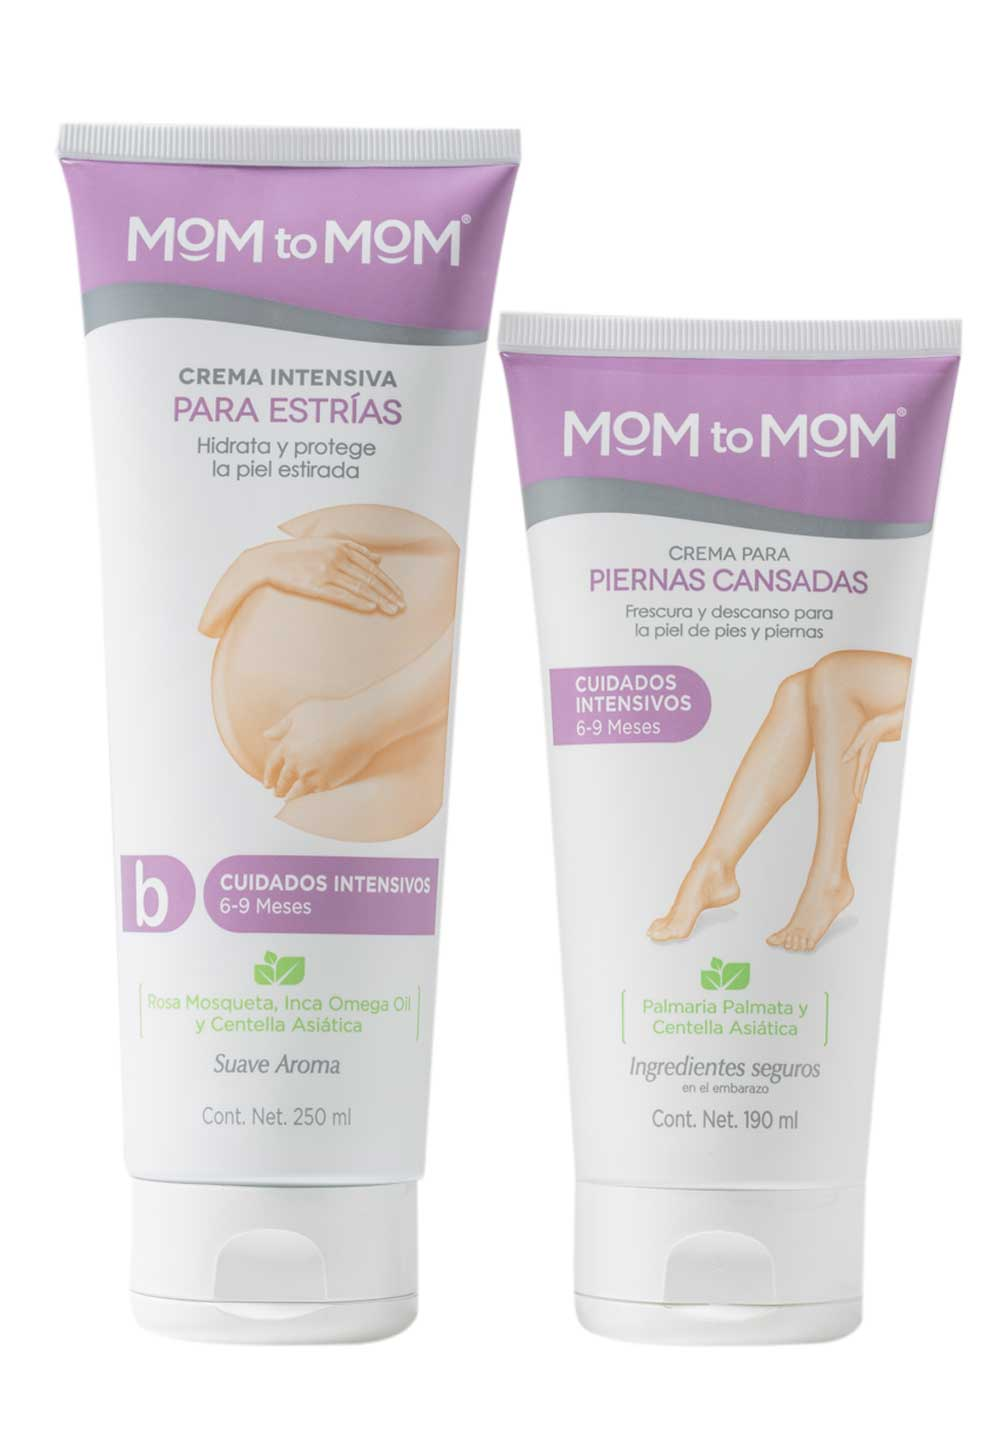 Kit MOM to MOM ETAPA b - 2 productos